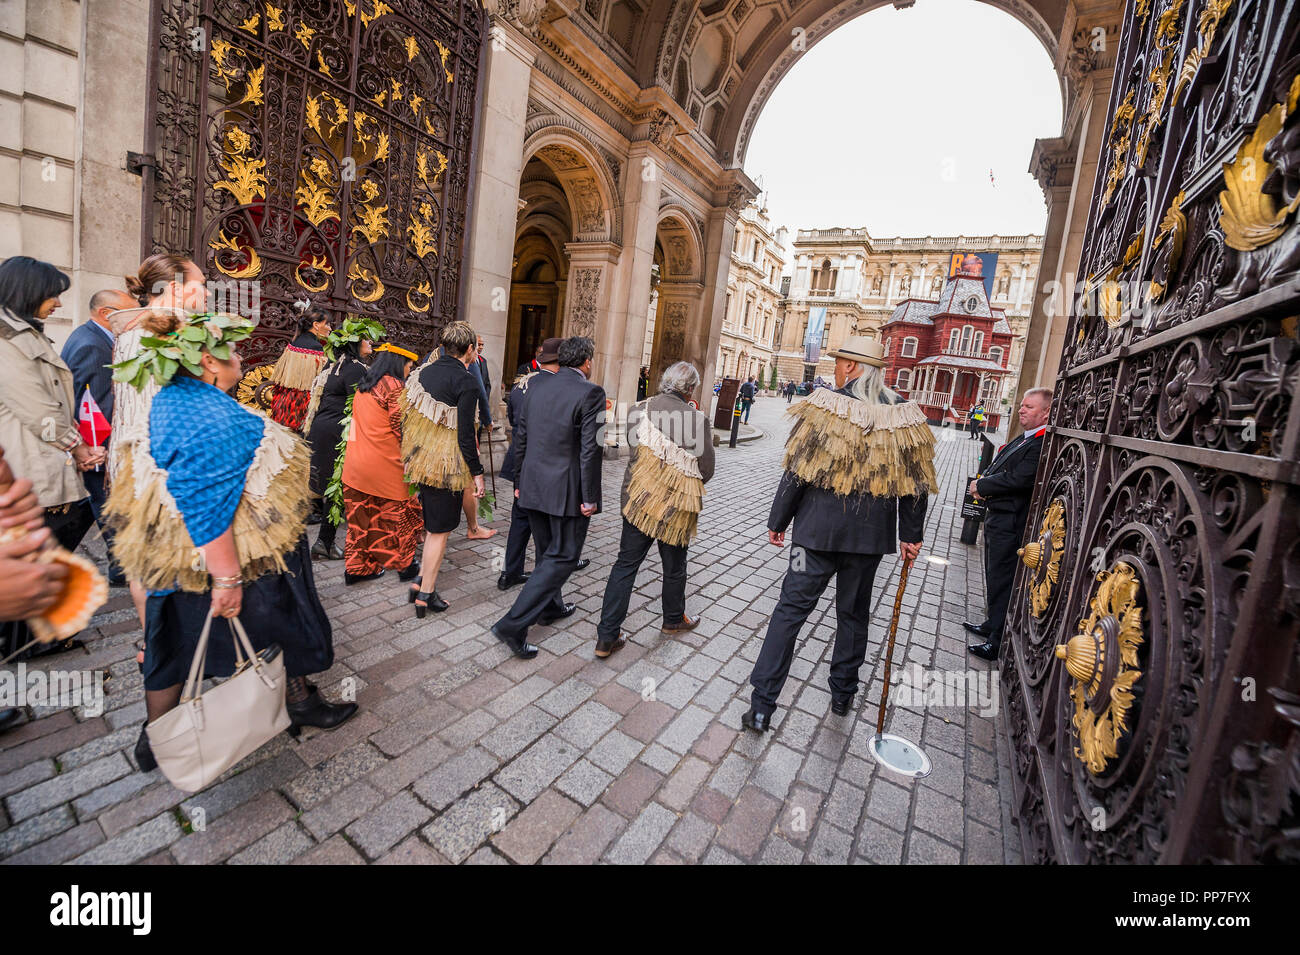 London, UK. 24th September, 2018. Being greeted as they enter the courtyard - A ceremonial procession and blessing ceremony for the Royal Academy's forthcoming Oceania exhibition. The procession started from Green Park and moved down Piccadilly to the RA Courtyard where they were formally welcomed by members of Ngāti Rānana, the London Māori Club. Countries and territories involved in the ceremony included New Zealand, Fiji, the Kingdom of Tonga, Papua New Guinea and Tahiti. Credit: Guy Bell/Alamy Live News - Stock Image